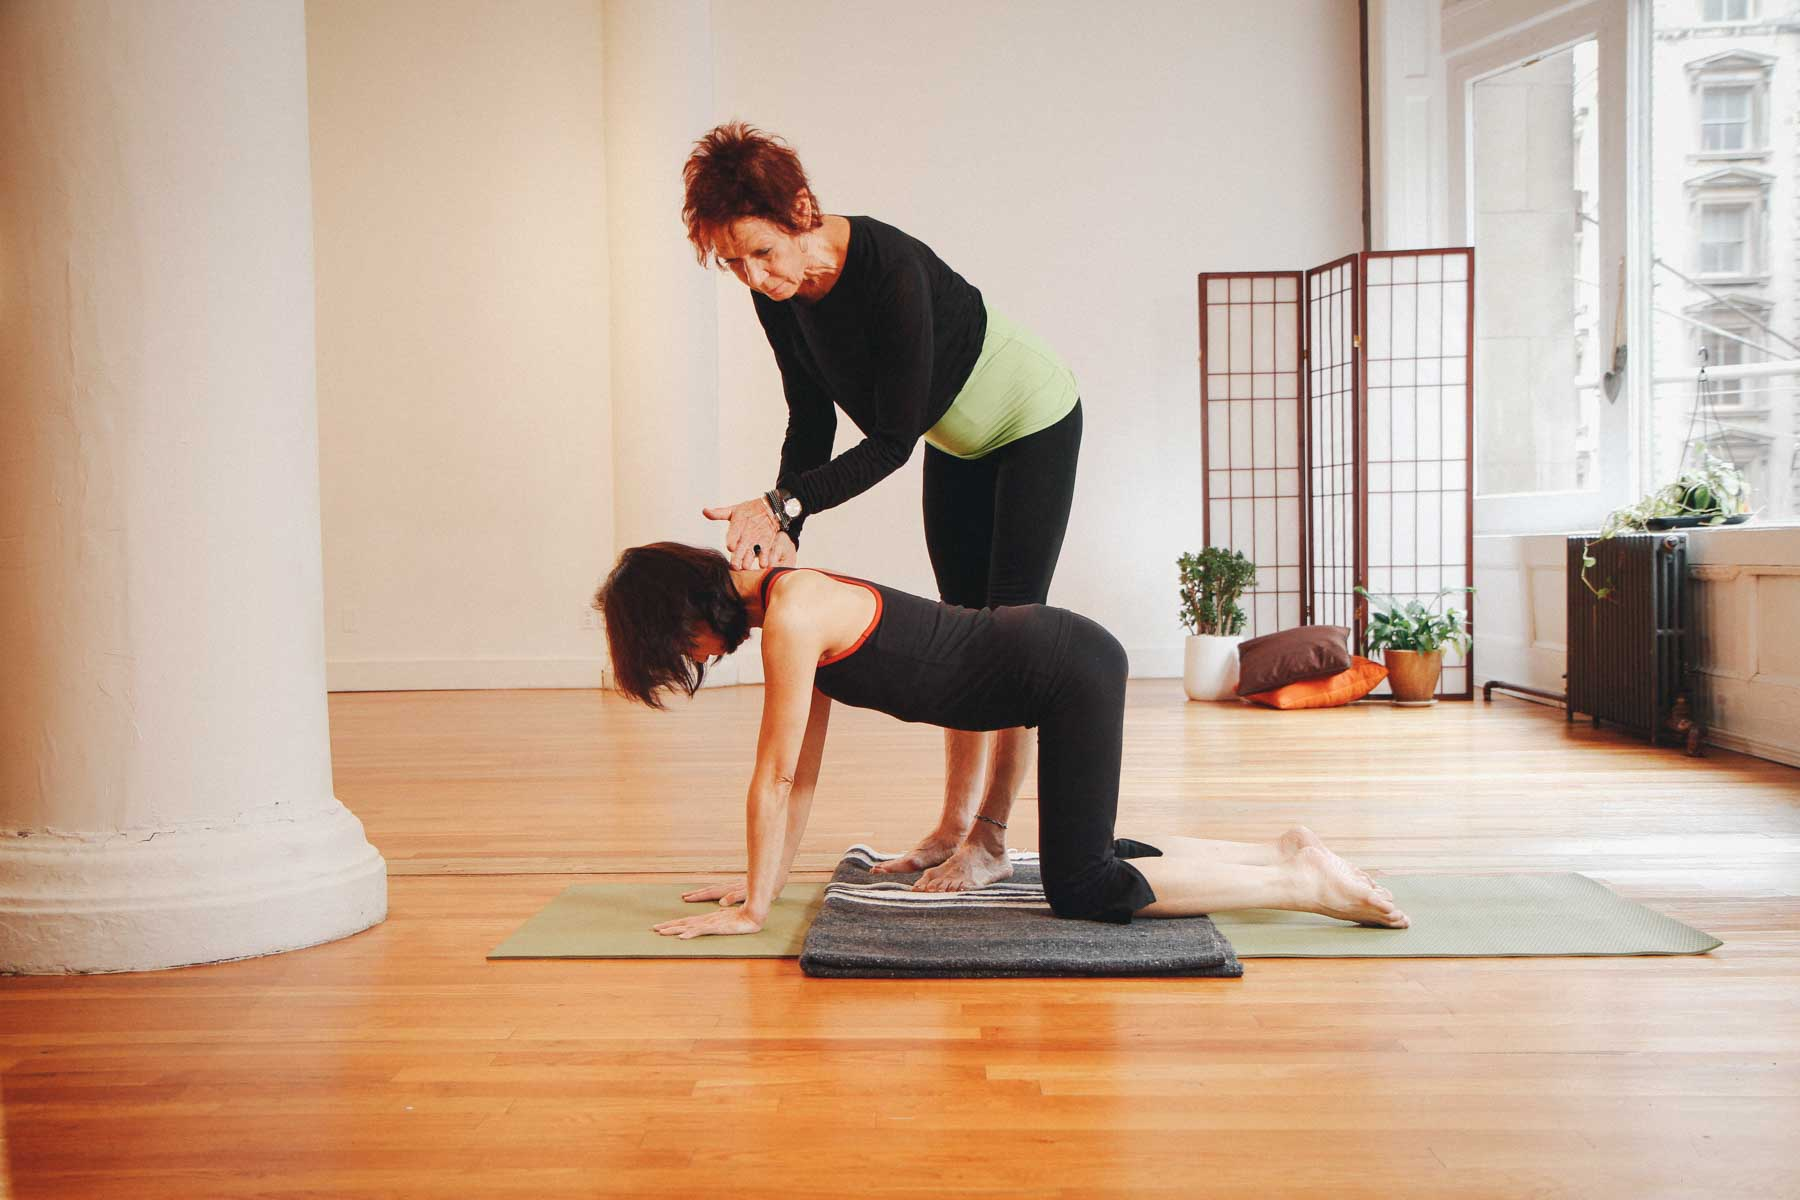 Female yoga teacher assisting female yoga student in a kneeling yoga pose